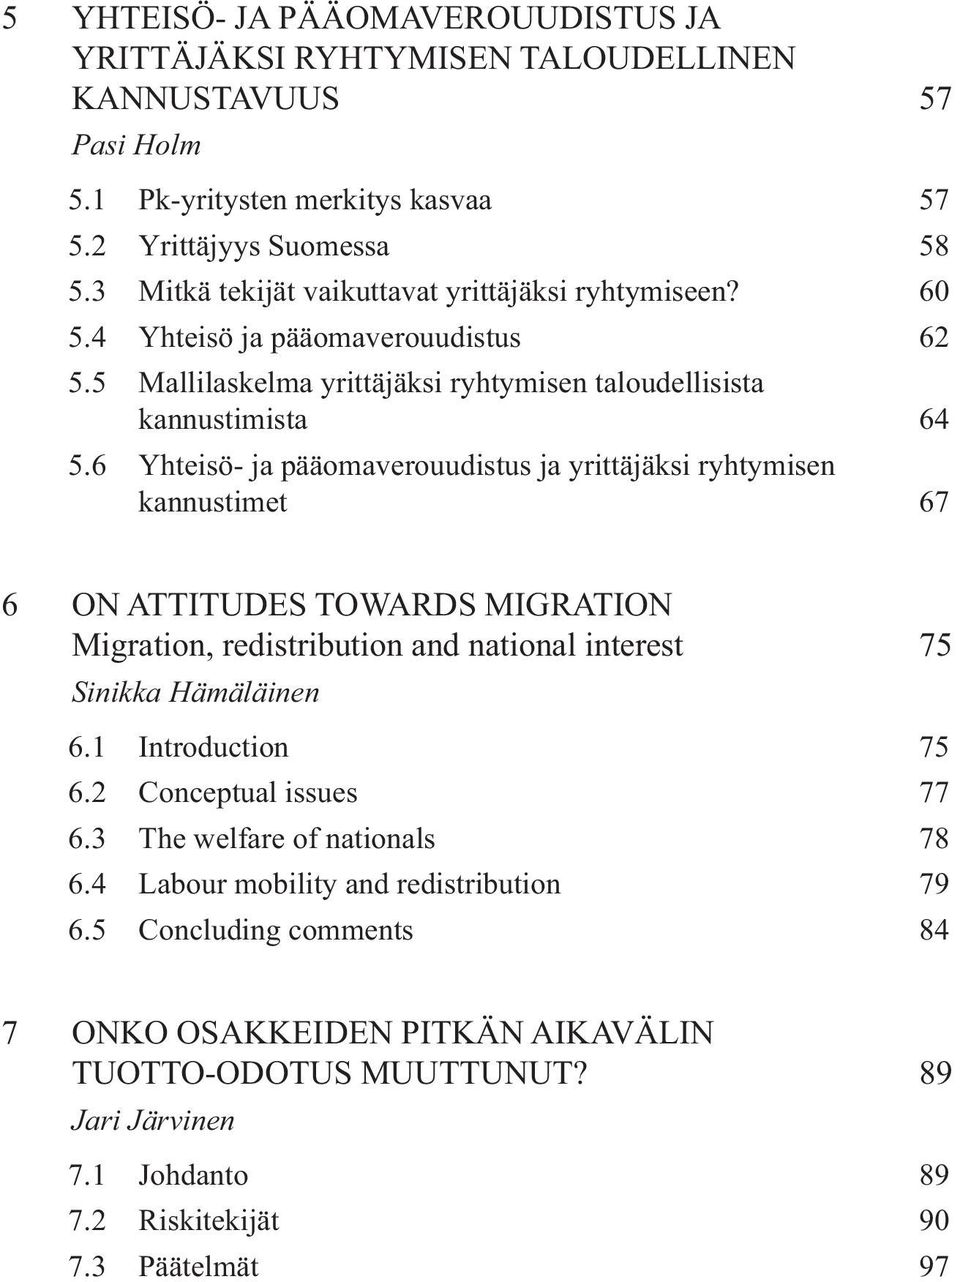 6 Yhteisö- ja pääomaverouudistus ja yrittäjäksi ryhtymisen kannustimet 67 6 ON ATTITUDES TOWARDS MIGRATION Migration, redistribution and national interest 75 Sinikka Hämäläinen 6.